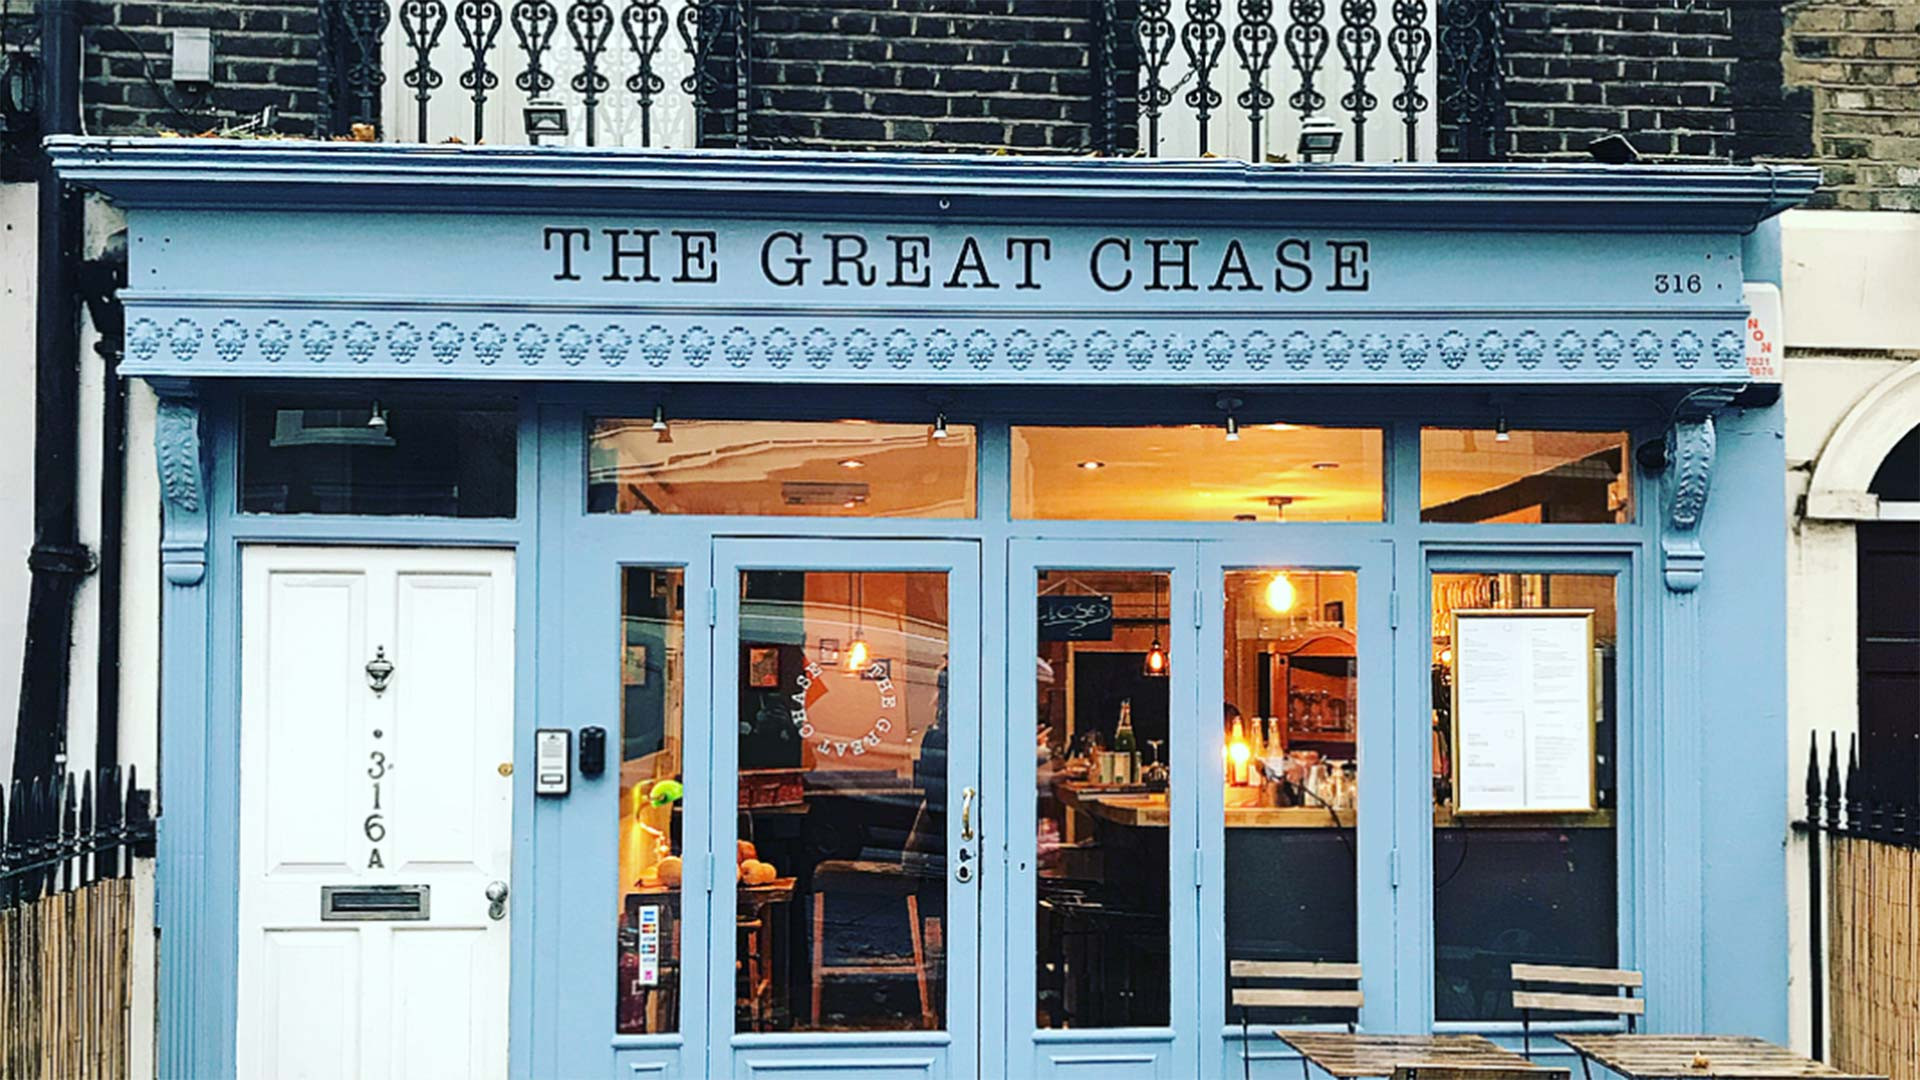 Foodism 100: Best Fine-Dining Restaurant, The Great Chase